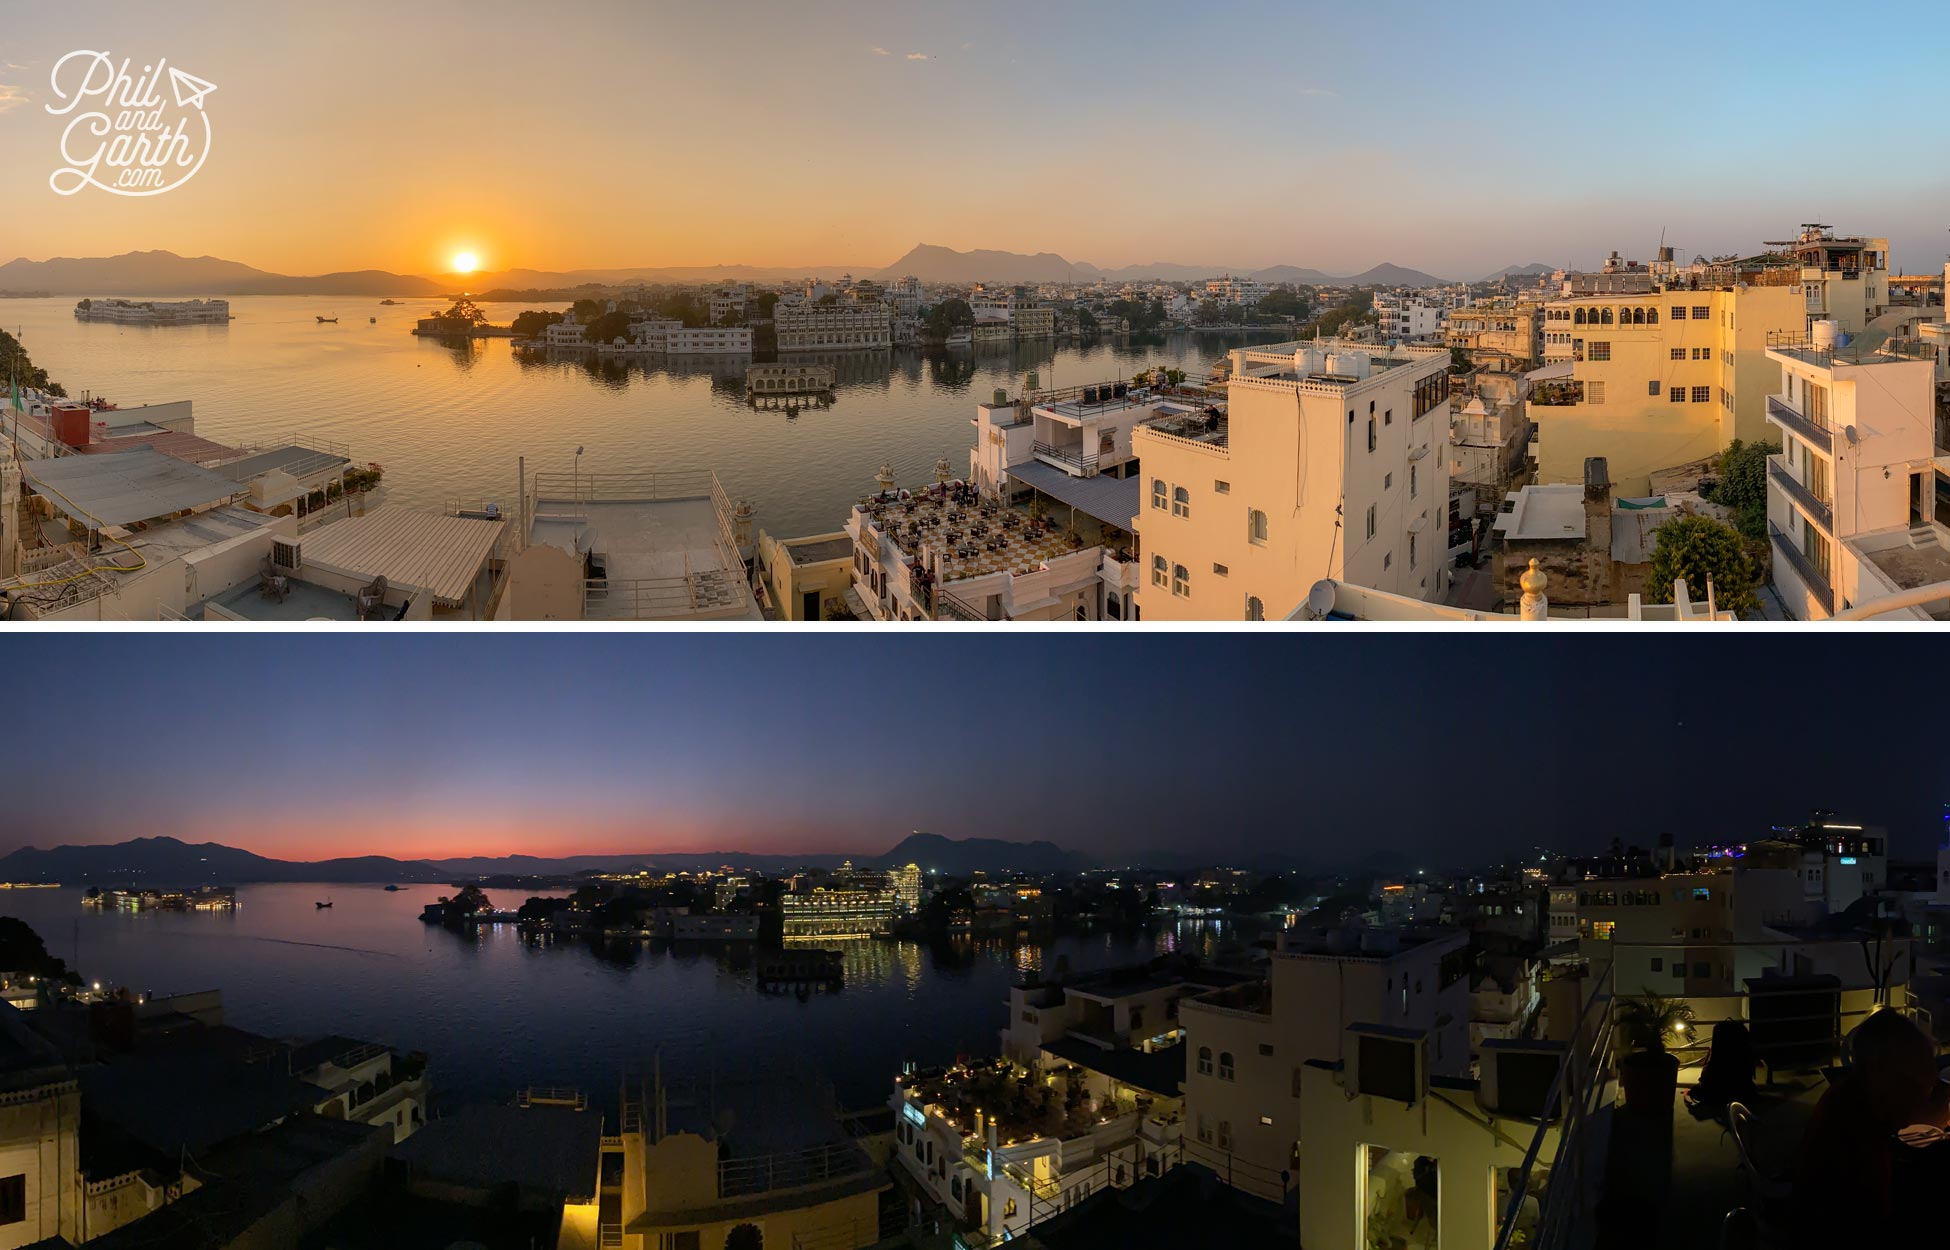 Watching the sunset from the rooftop restaurant of Hotel Udaigarh